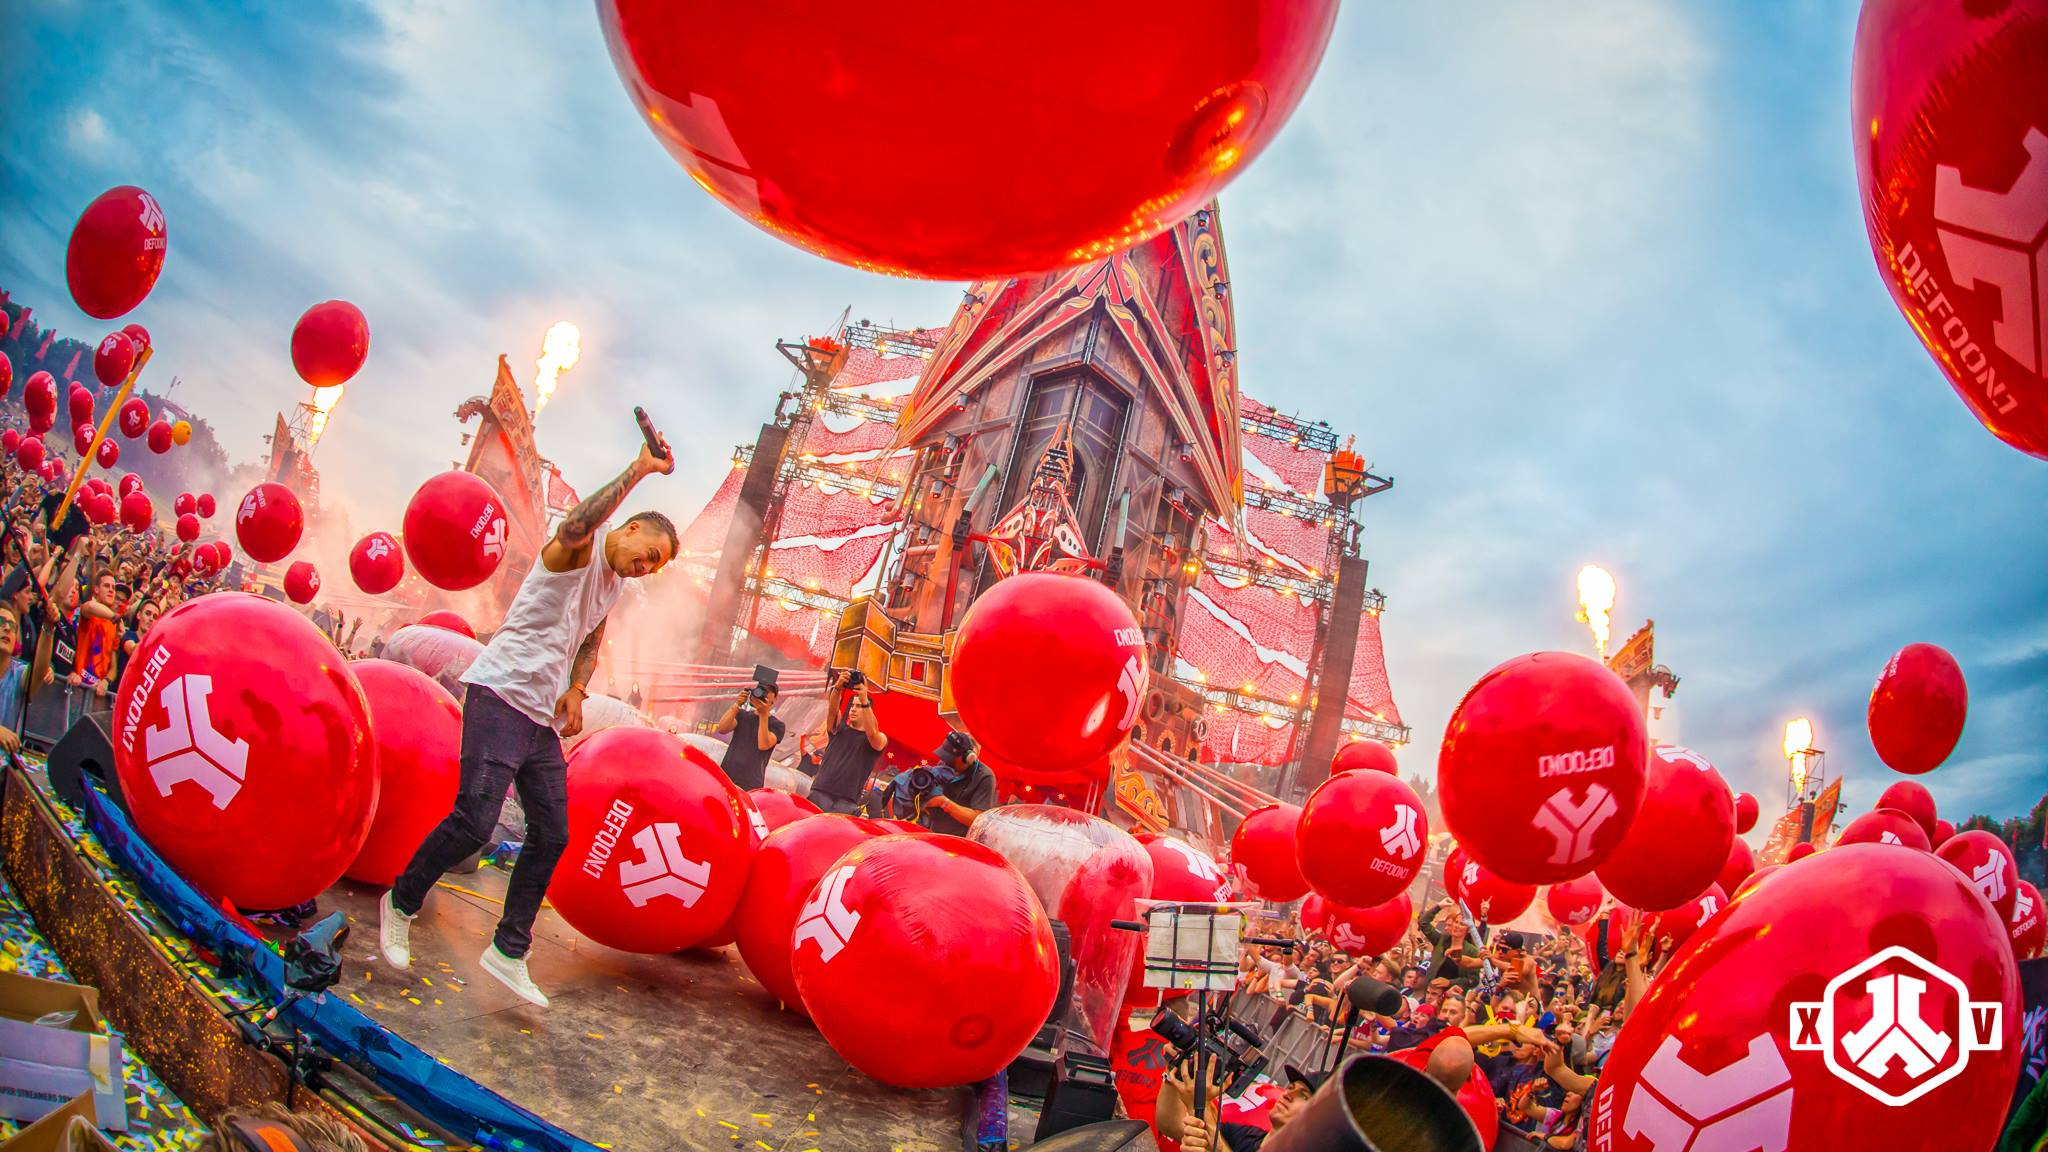 It was LEGENDARY - Defqon 1 2017 - The Sunday - Hardstyle Mag